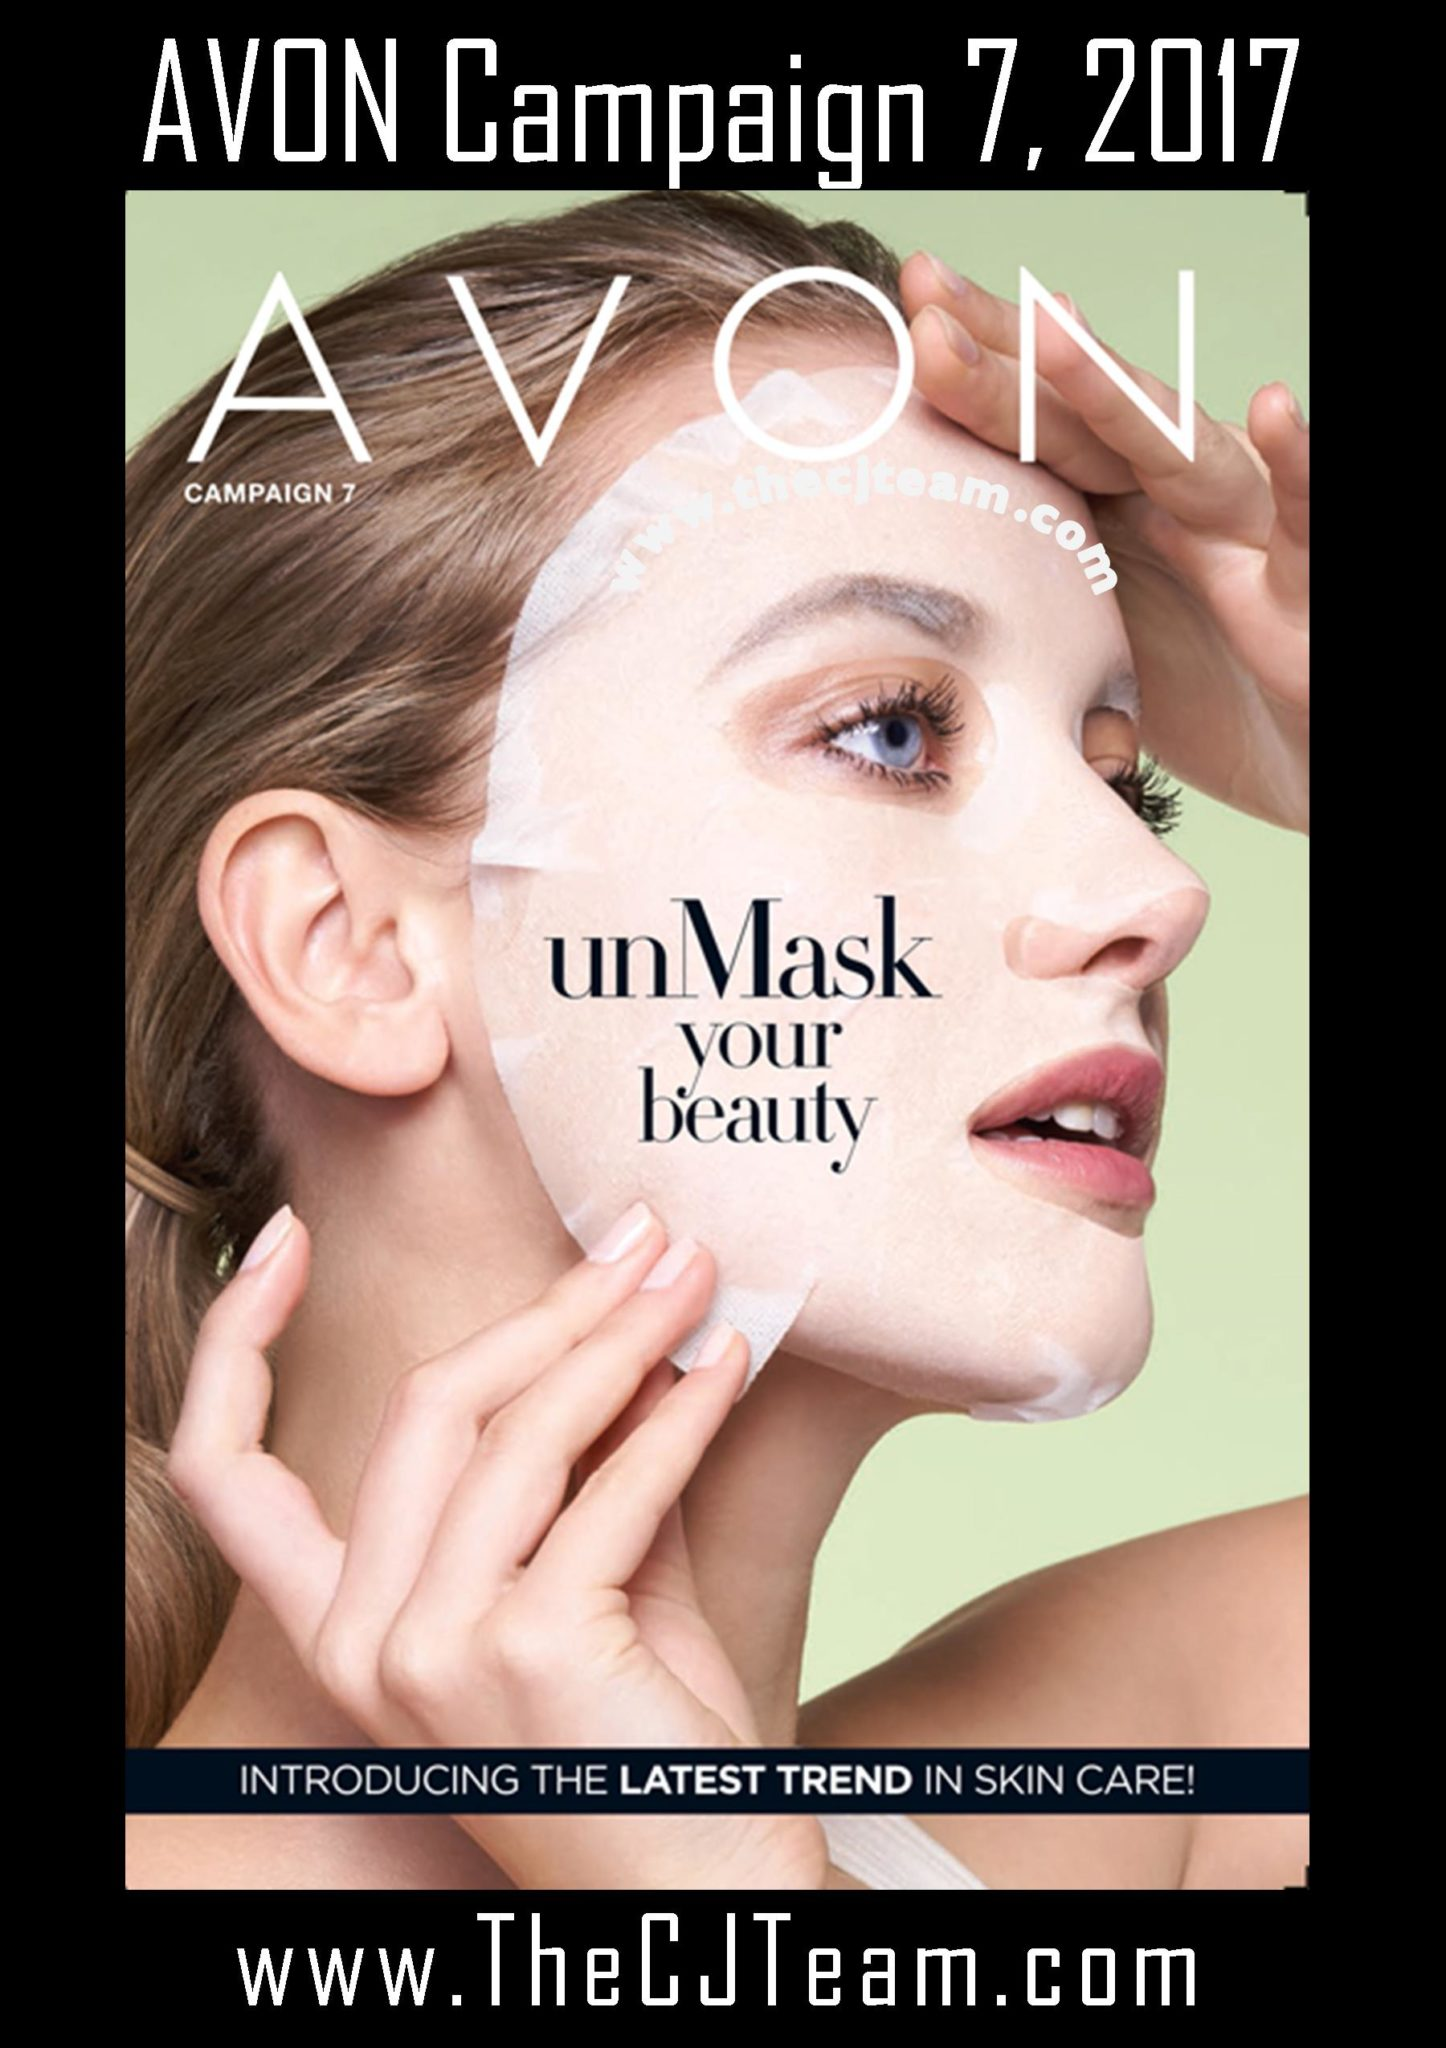 Avon Campaign 7, 2017 - More Than Makeup Online